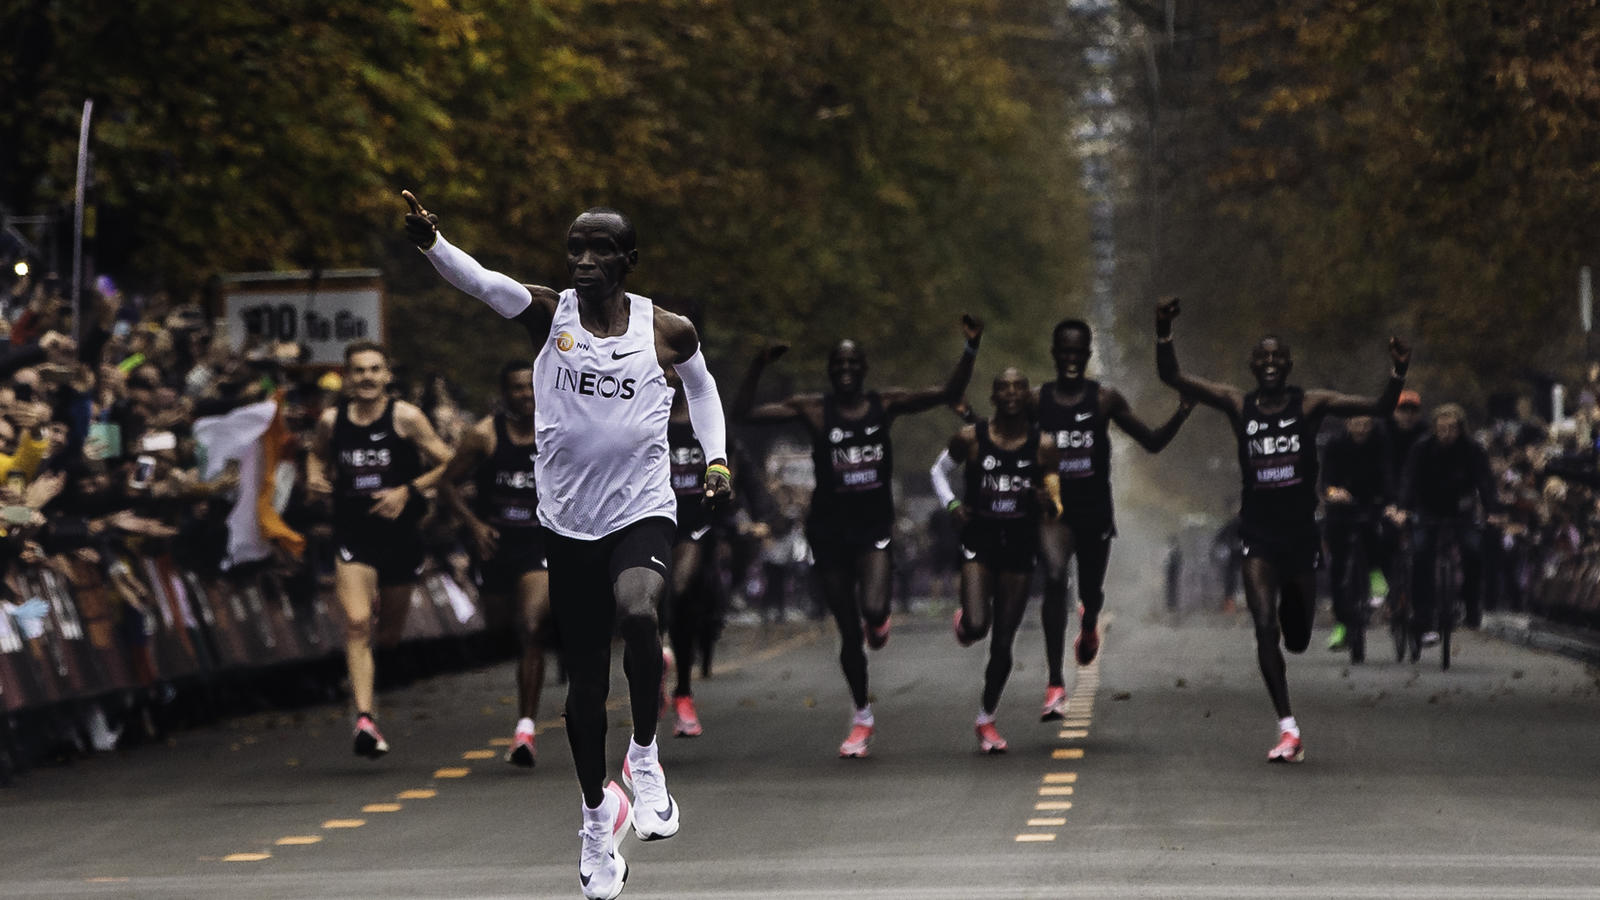 Anestésico Transeúnte capacidad  Eliud Kipchoge 1:59 Attempt Kit Nike Next% - Nike News